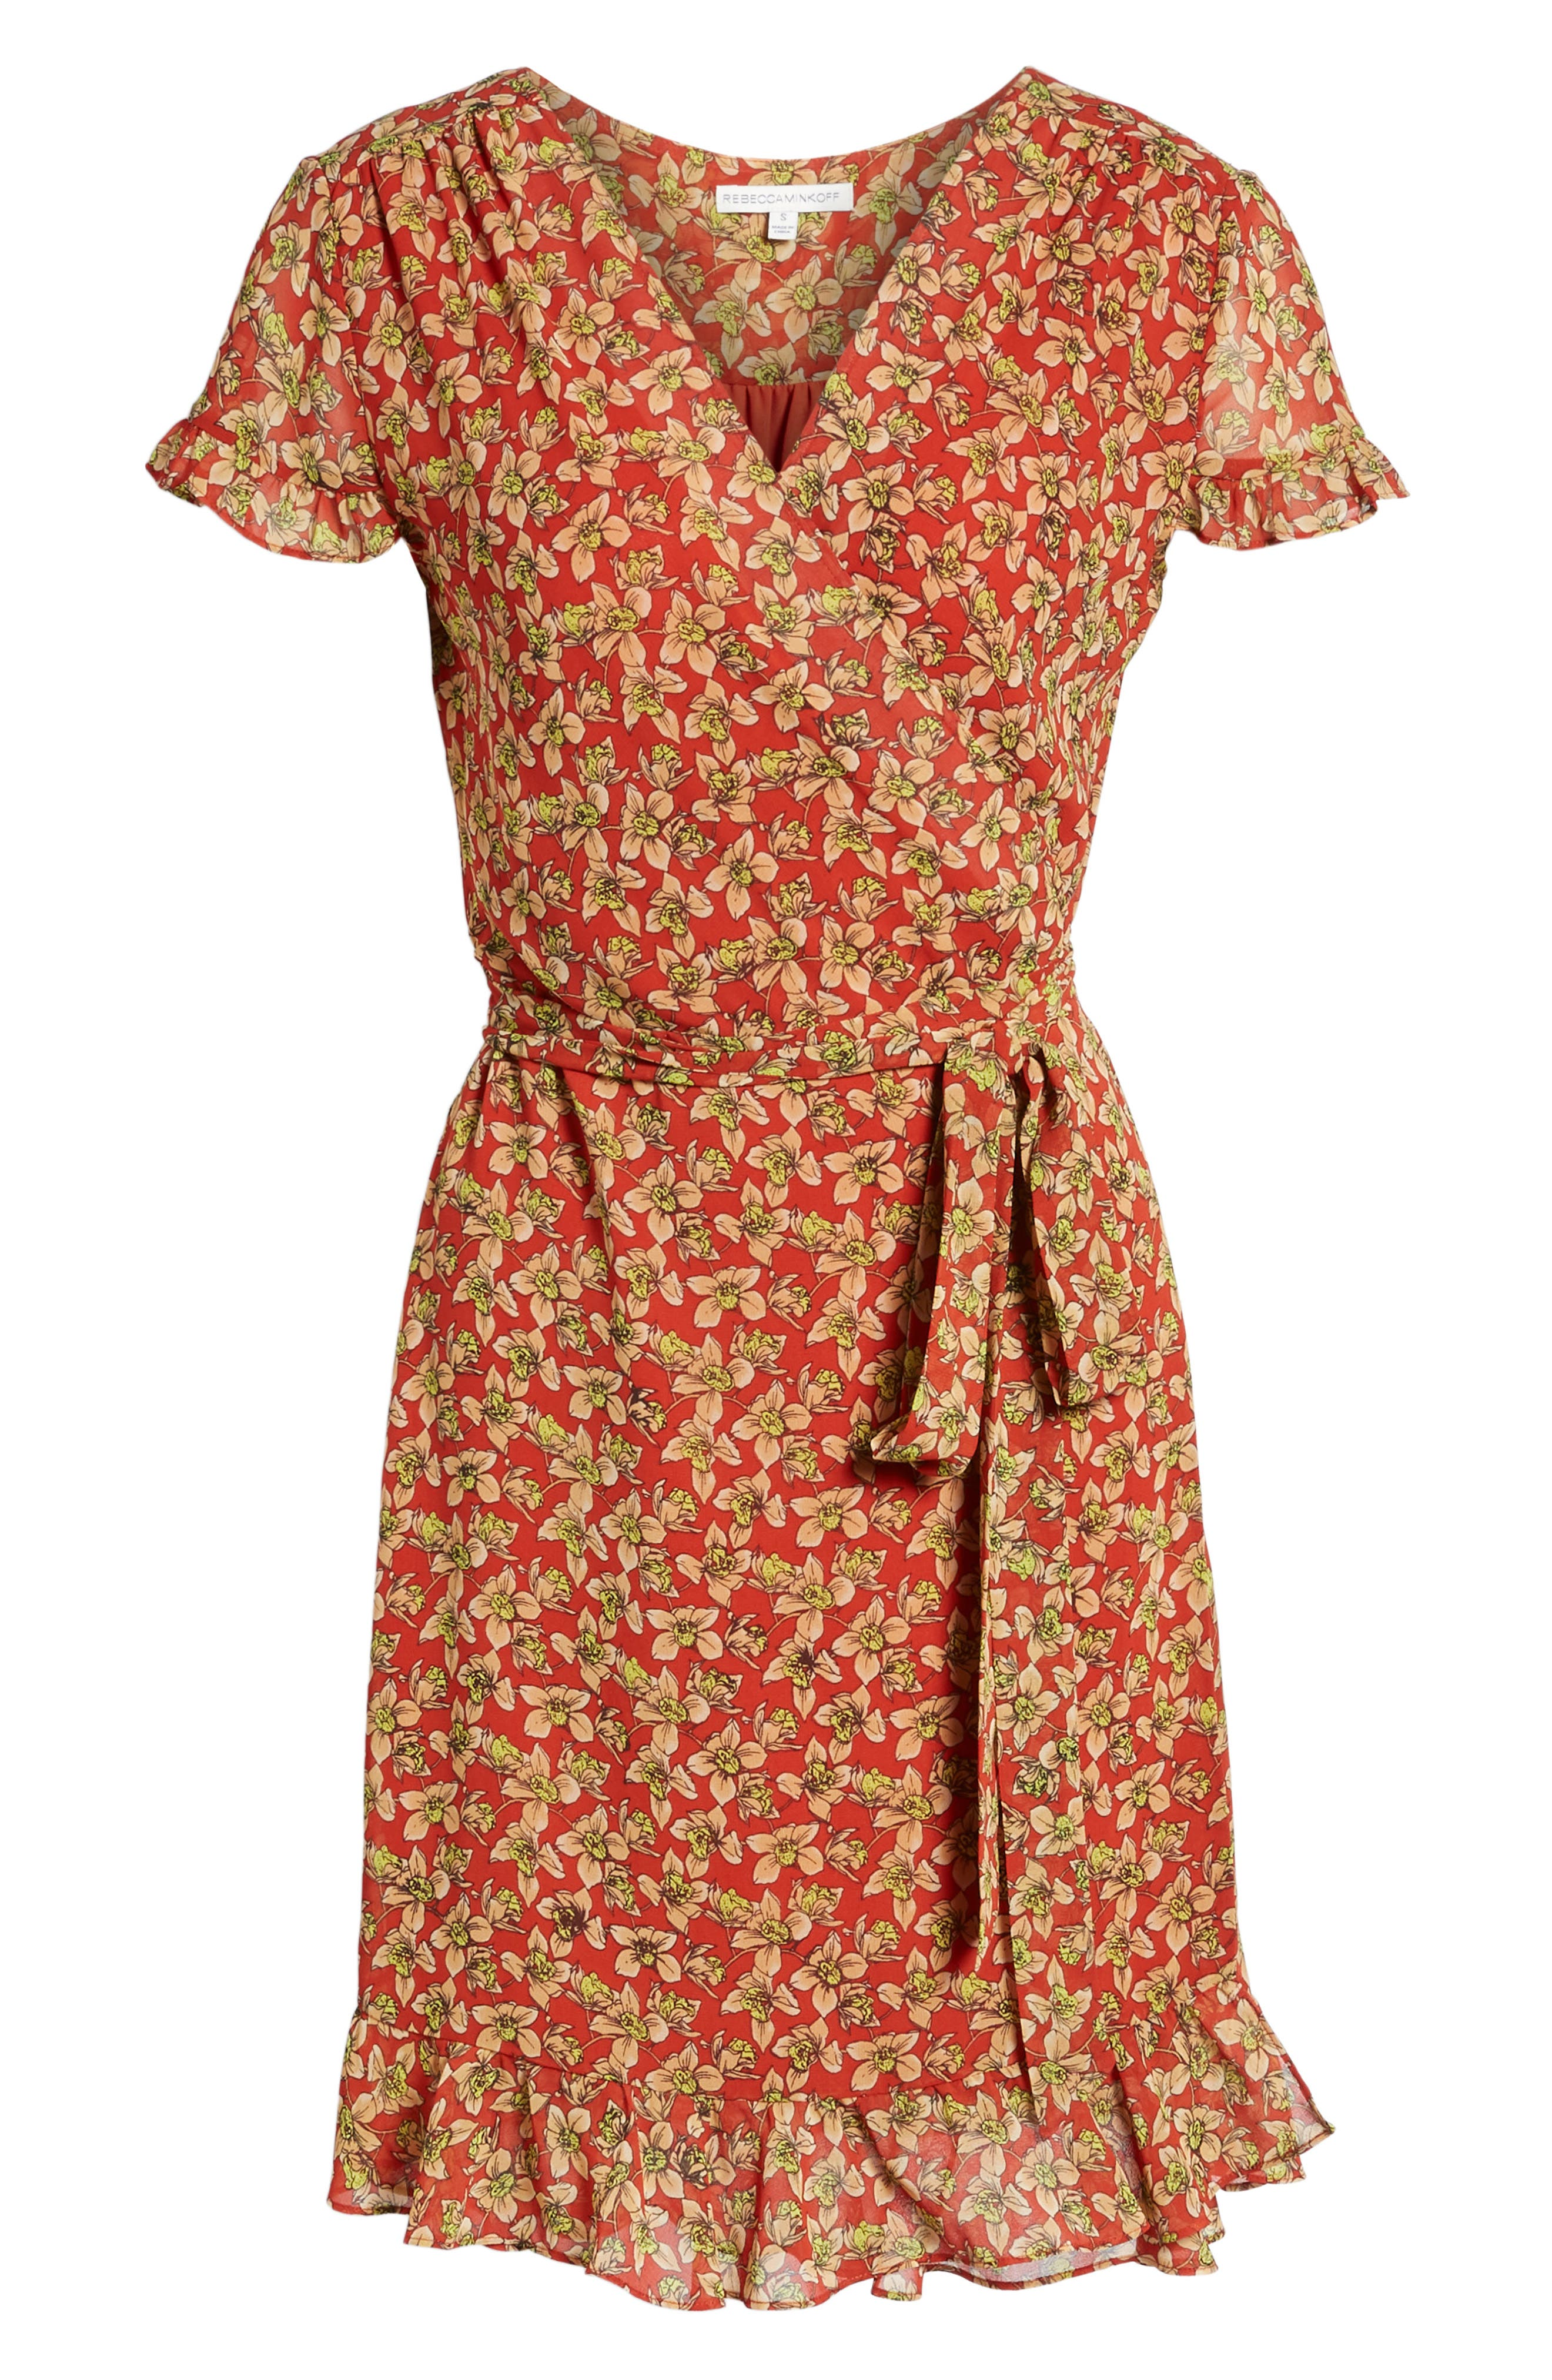 Ana Floral Wrap Dress,                             Alternate thumbnail 6, color,                             Red Multi